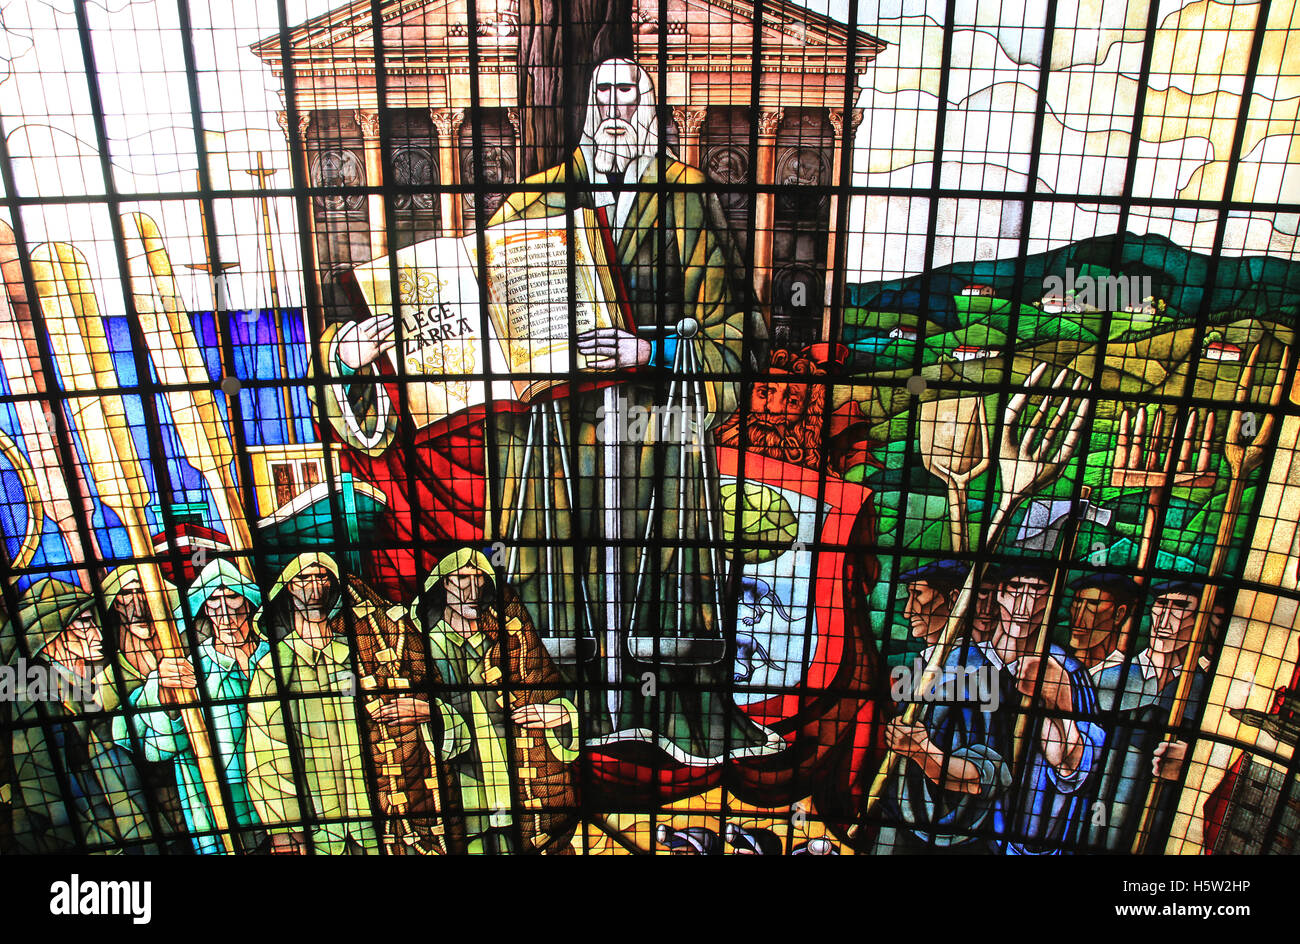 the Stained Glass Room.Stained glass that covers the entire ceiling.Guernica Tree and the history of the assemblies - Stock Image